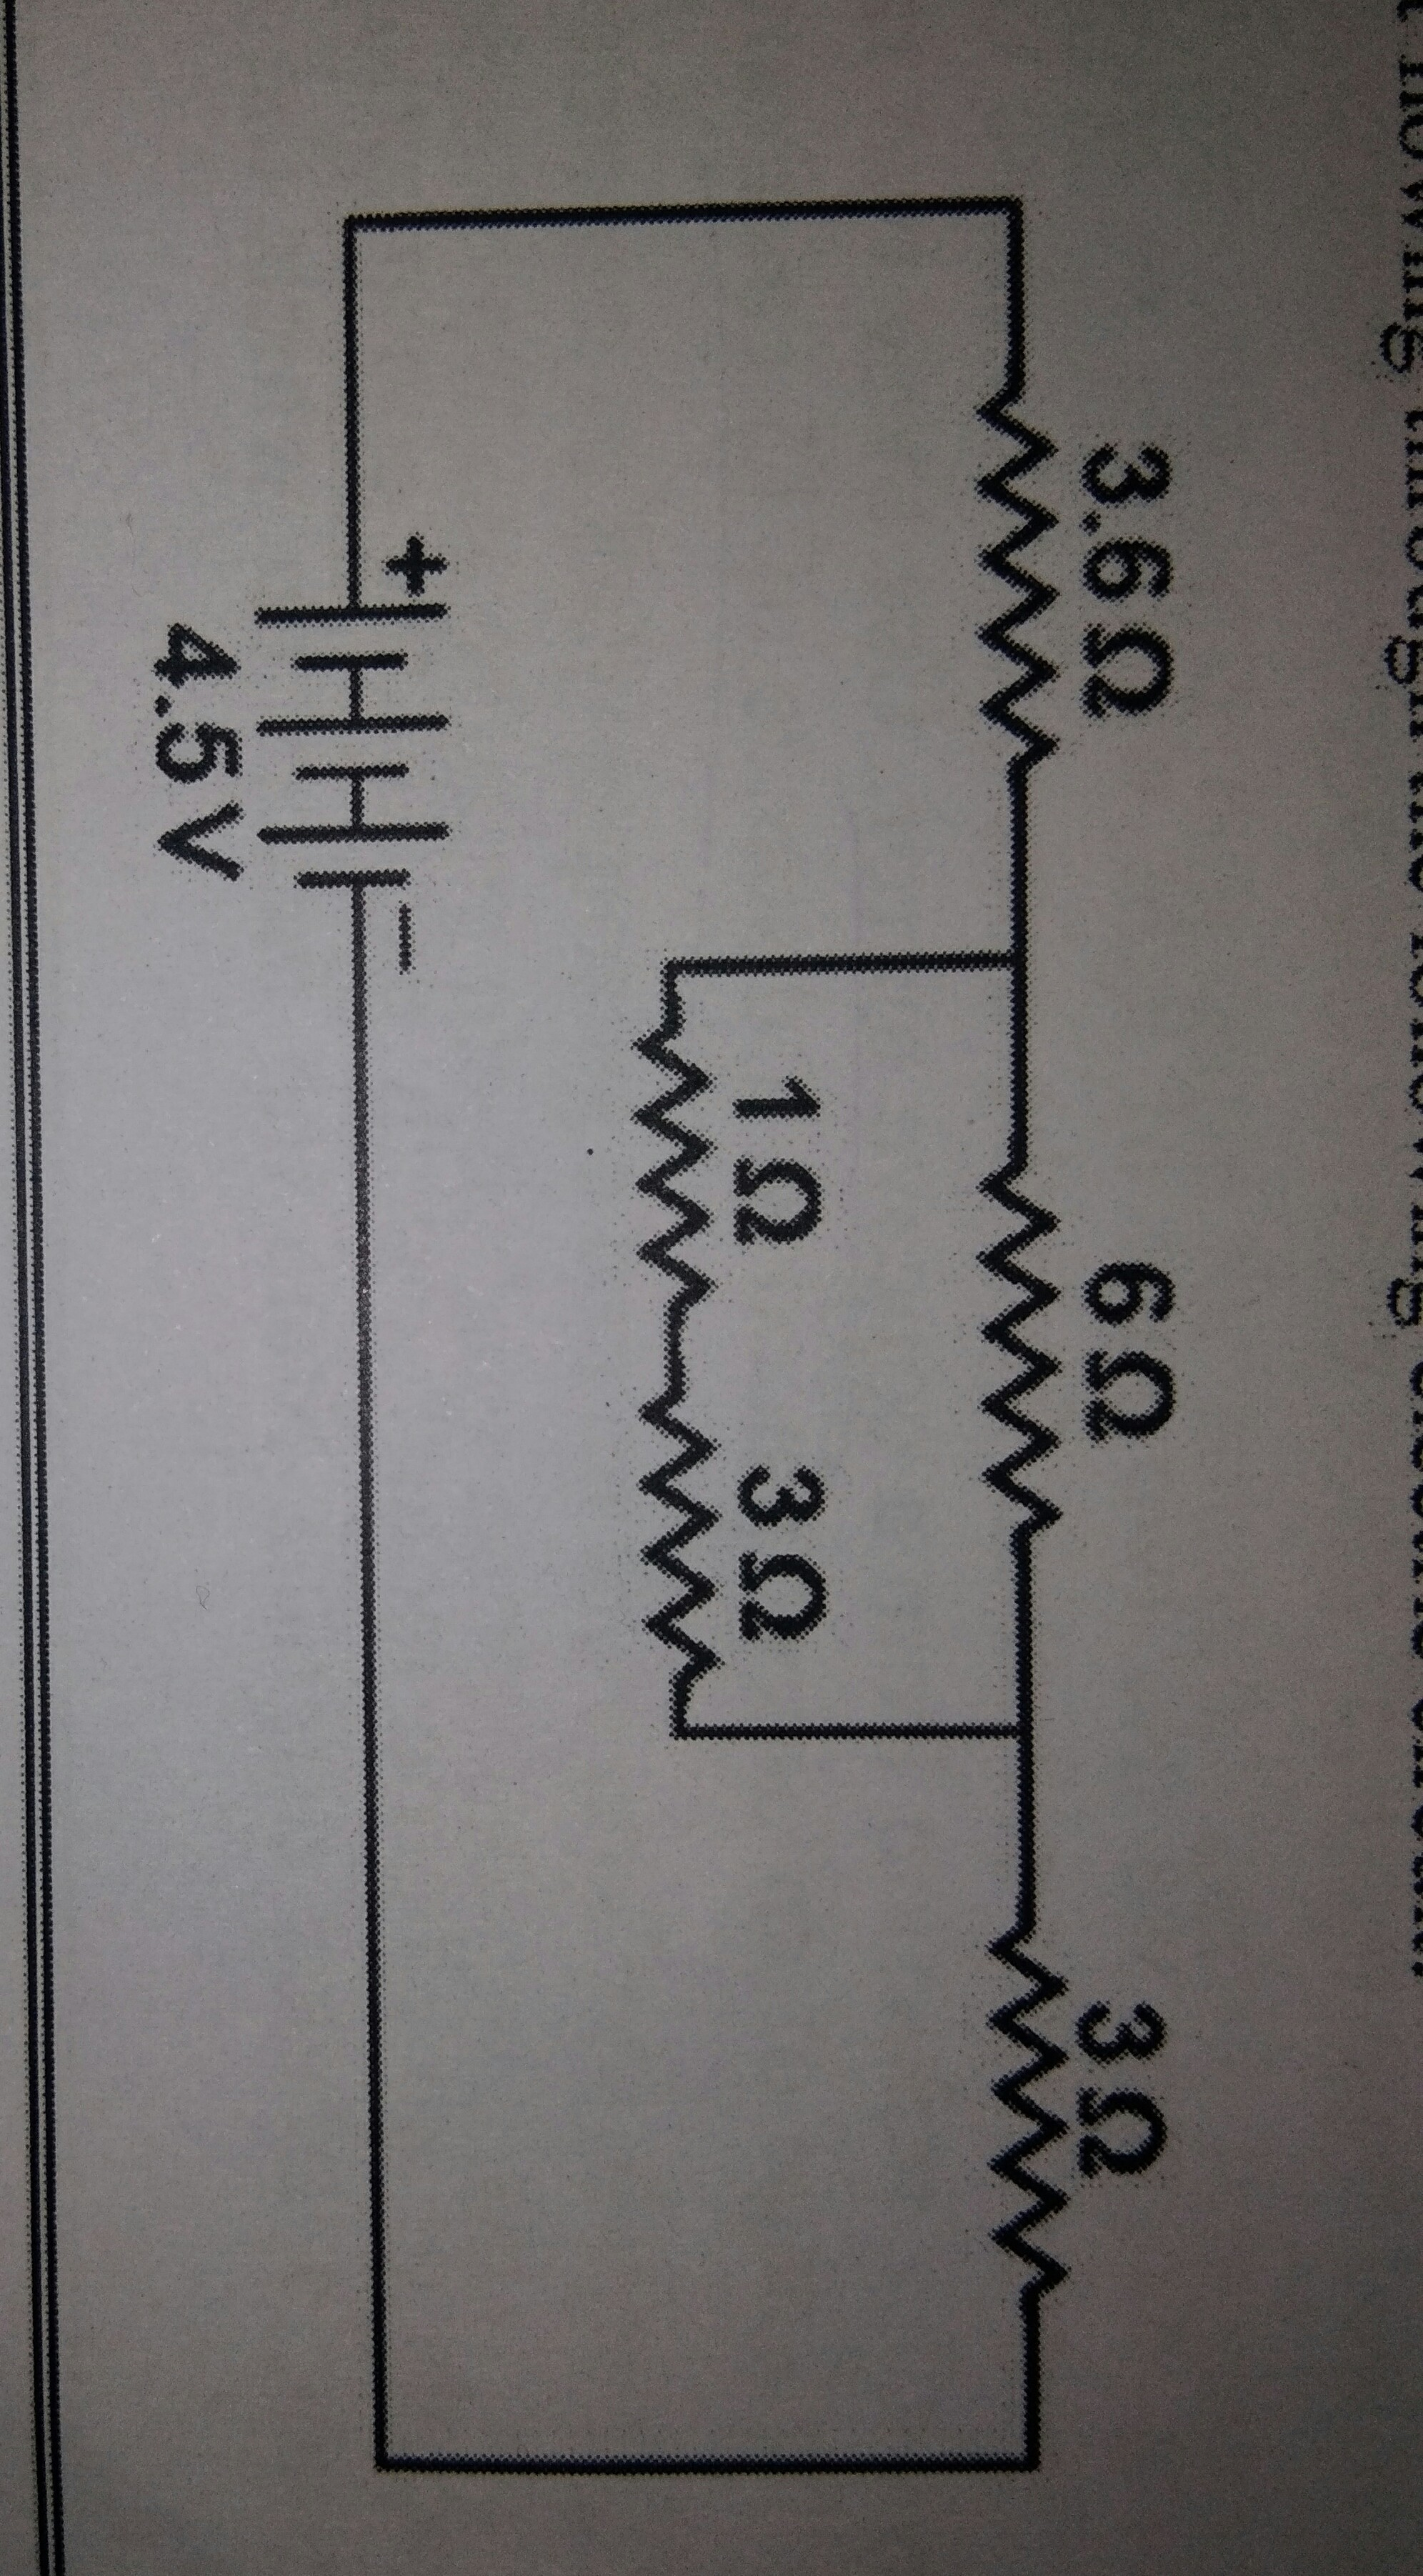 find the current flowing through the following electric circuit ...